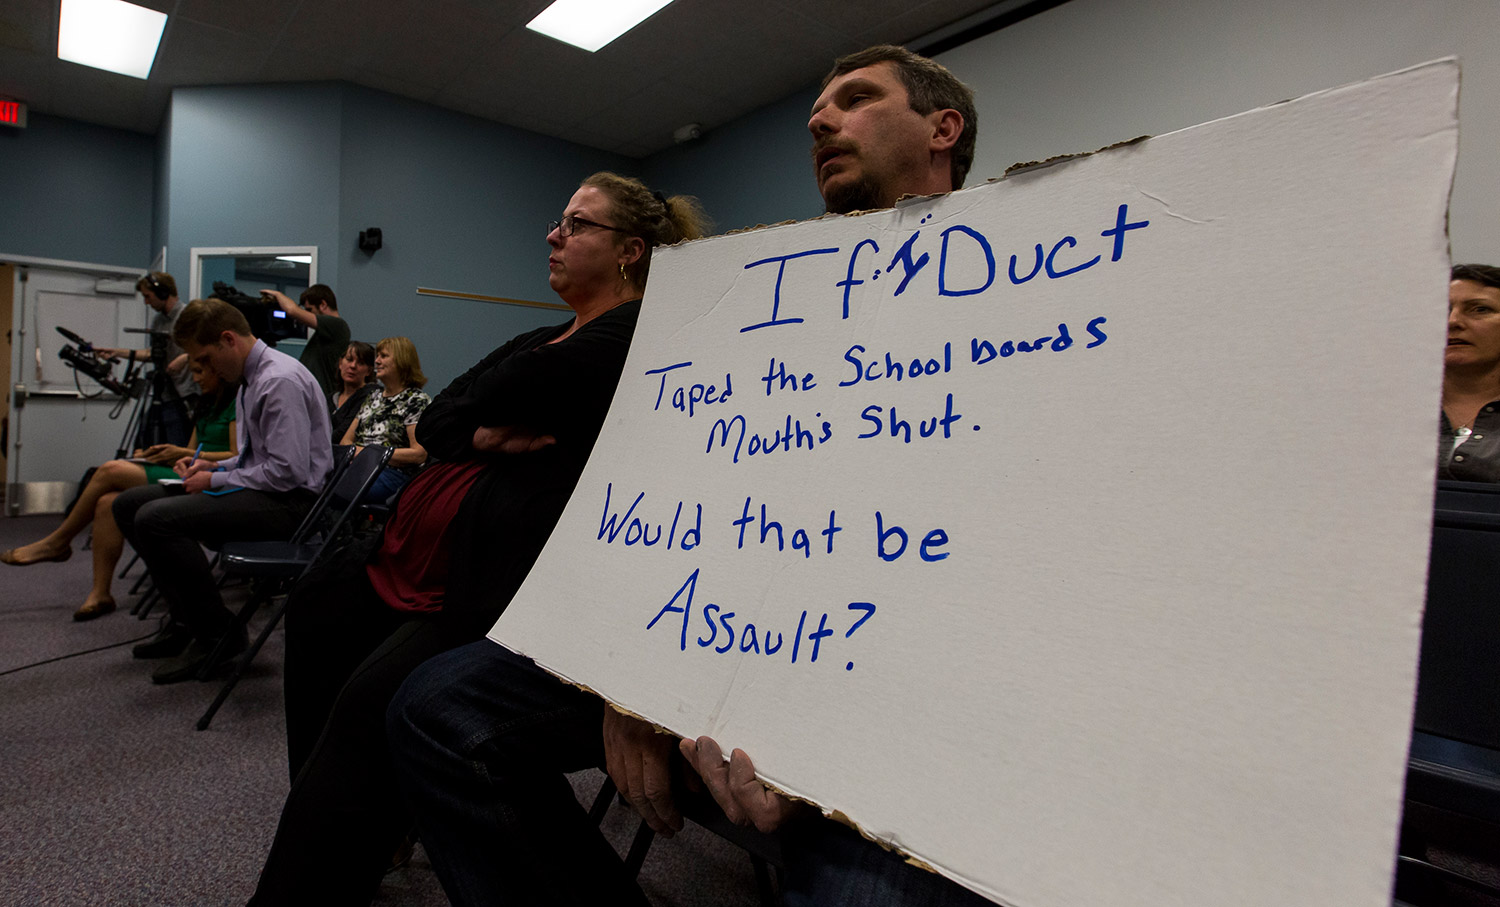 """Richard Bourgeois-Lang of Buxton holds a sign protesting the SAD 6 board's handling of the controversy surrounding Superintendent Frank Sherburne. Bourgeois-Lang and his wife, Melissa Bourgeois-Lang, left, created an outburst at the end of the meeting, after it was clear that Sherburne had not been fired. Richard Bourgeois-Lang slammed his fists on the table where the board sat, saying, """"You are not protecting our kids, you all need to go."""""""